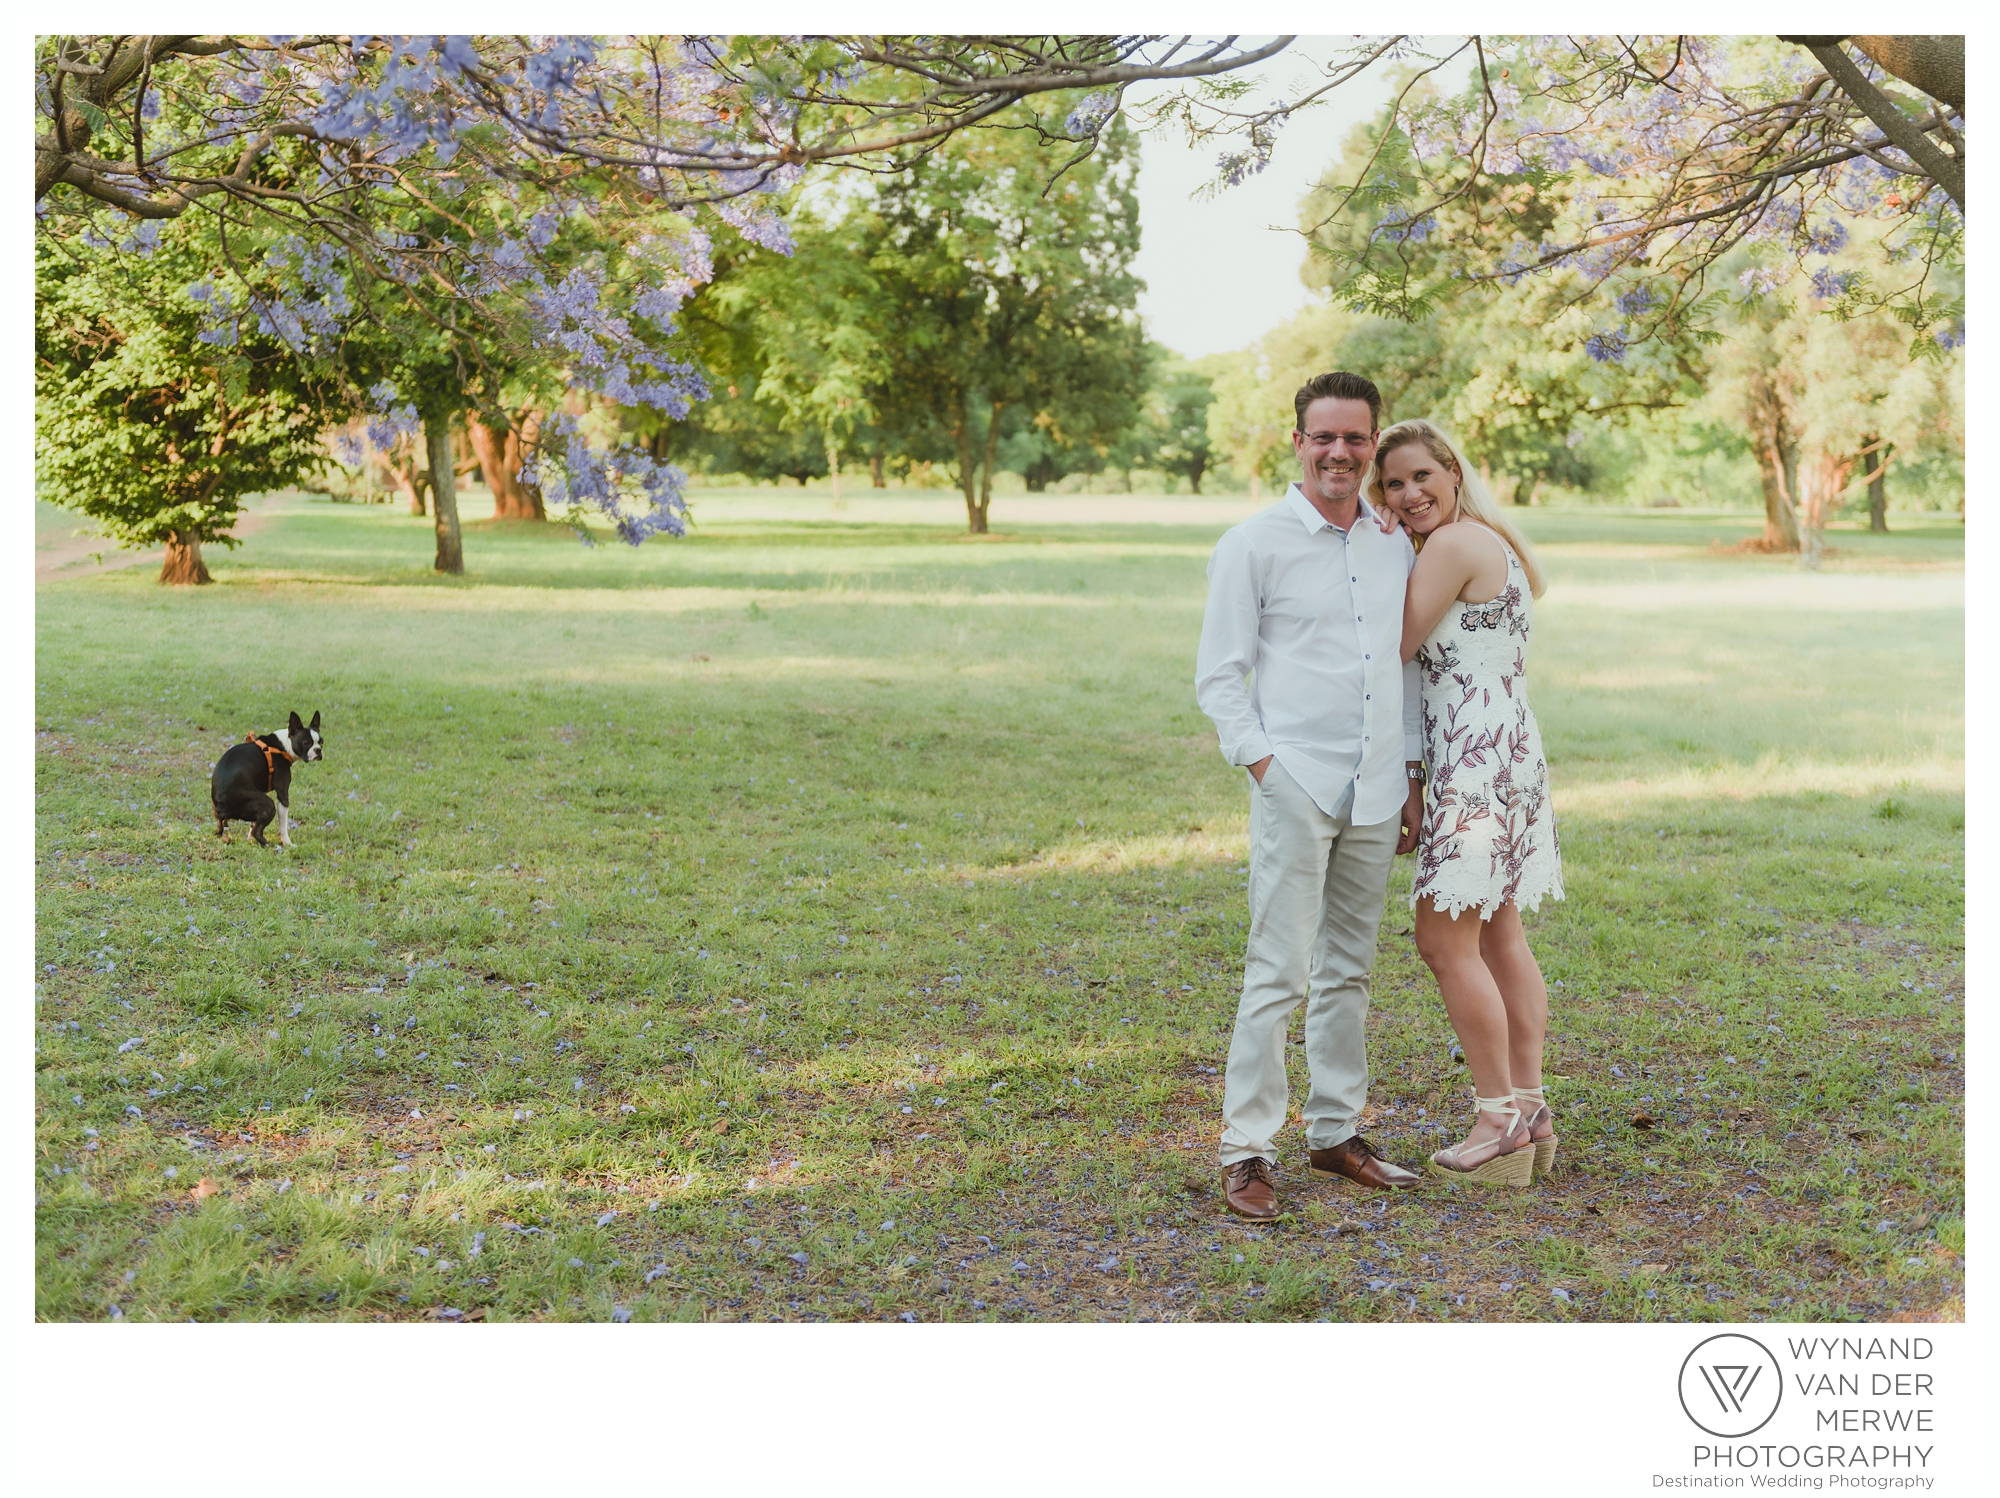 A dog making a poo while doing an engagement shoot